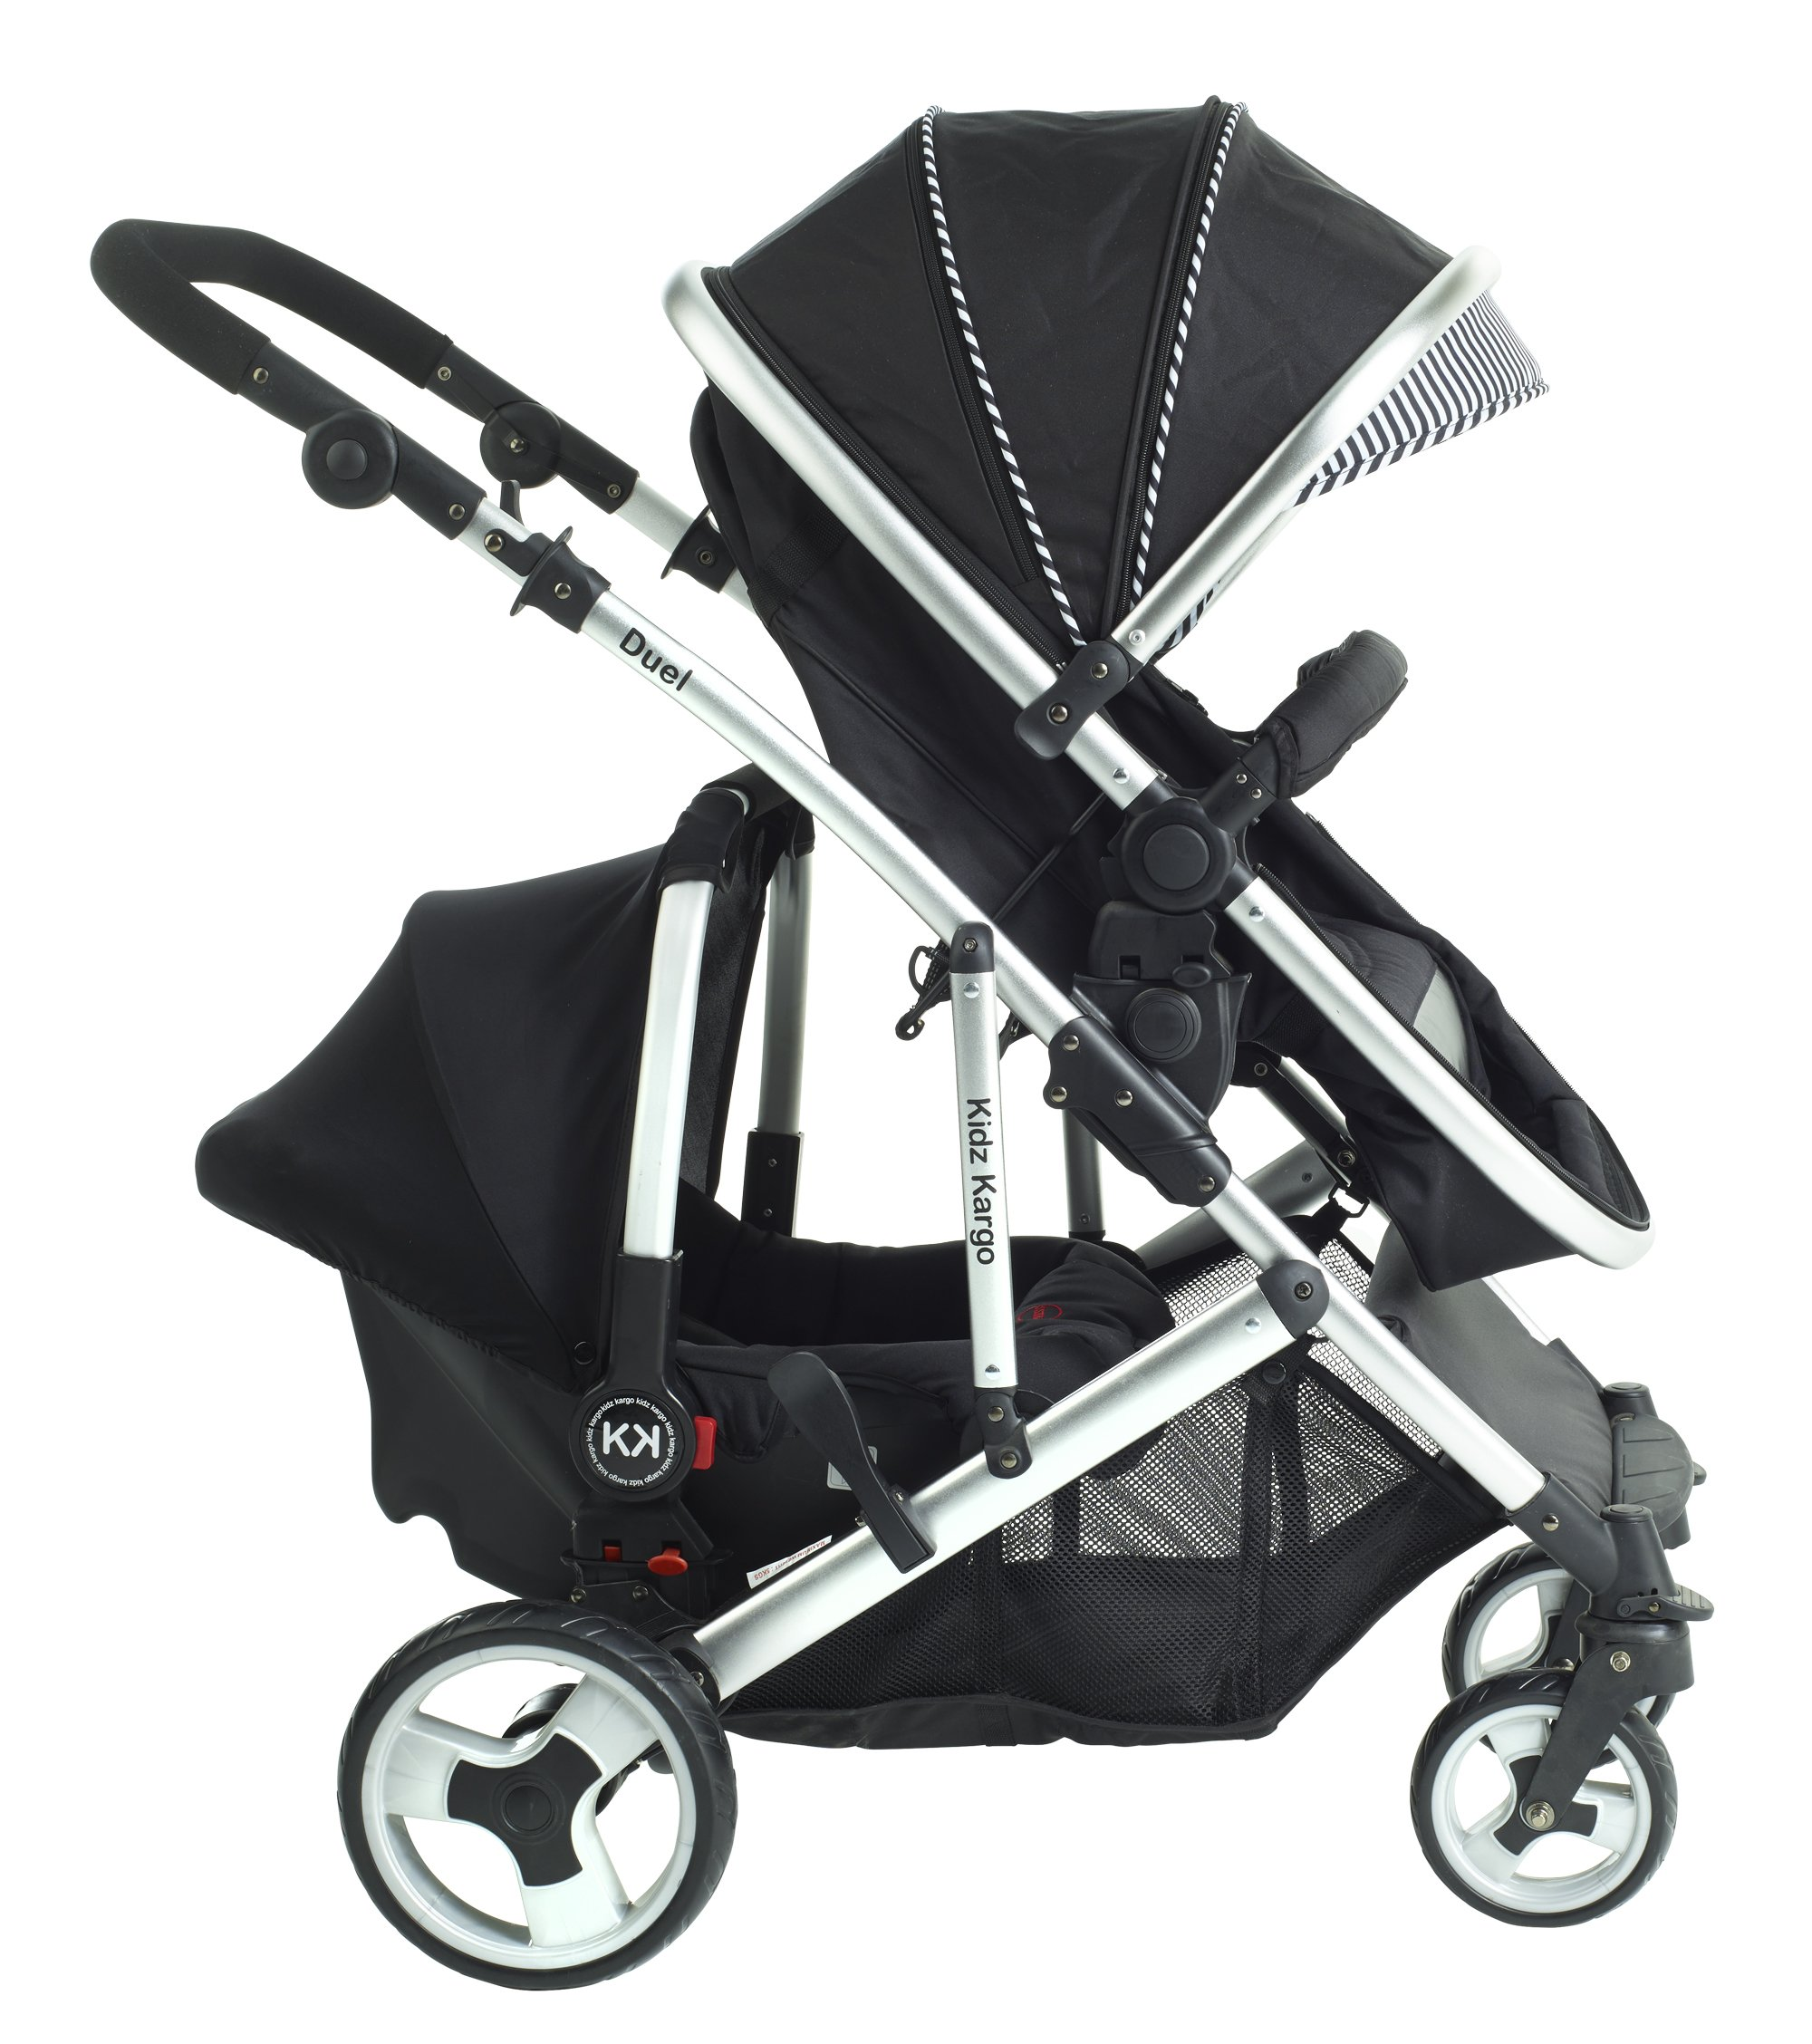 Duel combo Double pushchair with carrycot pram includes 2 FREE footmuffs Newborn & toddler, tandem travel system buggy convertible carrycot to seat unit and toddler/child seat unit, Midnight Black by Kids Kargo Kids Kargo The carrycot when converted to seat unit, can be rear or forward facing. Versatile. Suitable for Newborn and toddler: Carrycot with mattress and soft lining, which zip off. Remove lining and lid, when baby grows out of carrycot mode. Converts to a full sized seat unit, with 5 point harness. Bucket seat unit for toddler or baby over 6 months sits in forward facing bottom position , or forward and rear facing at the top, if car seat used at the bottom. 2